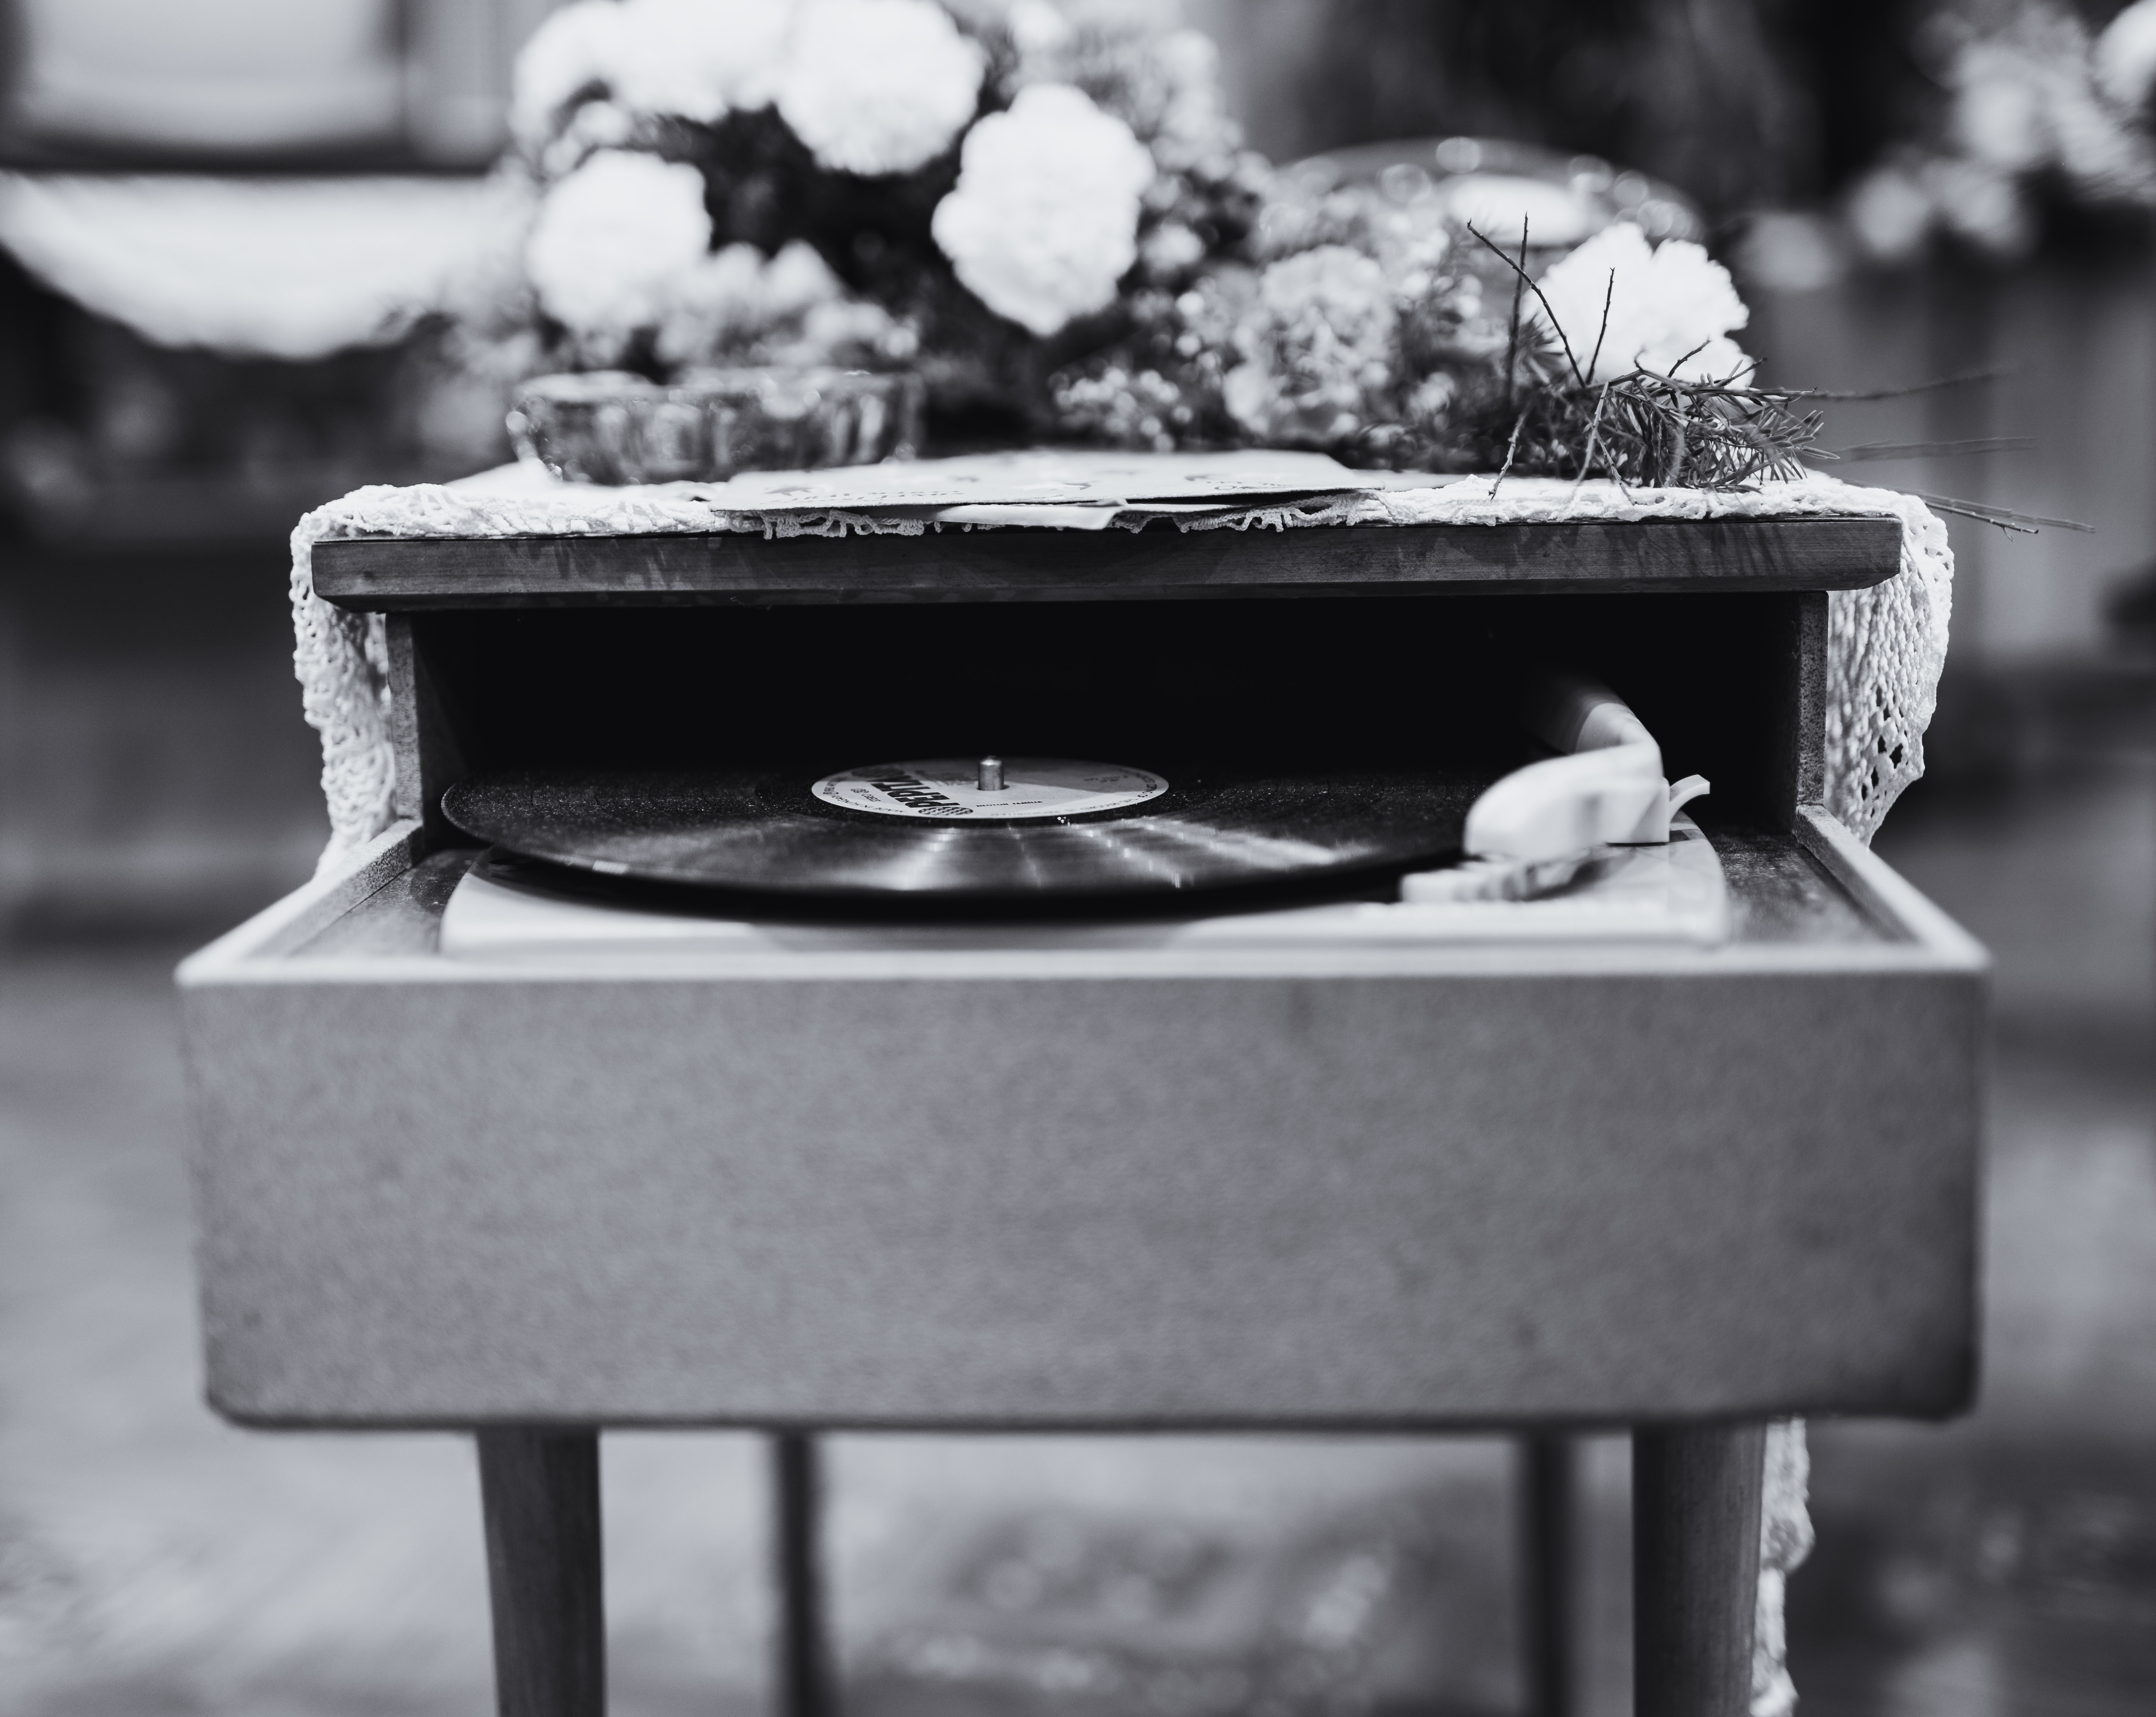 Grayscale Photo Of Vinyl Record Album Playing In Turntable, Black and white, Black-and-white, Decoration, Disc, HQ Photo